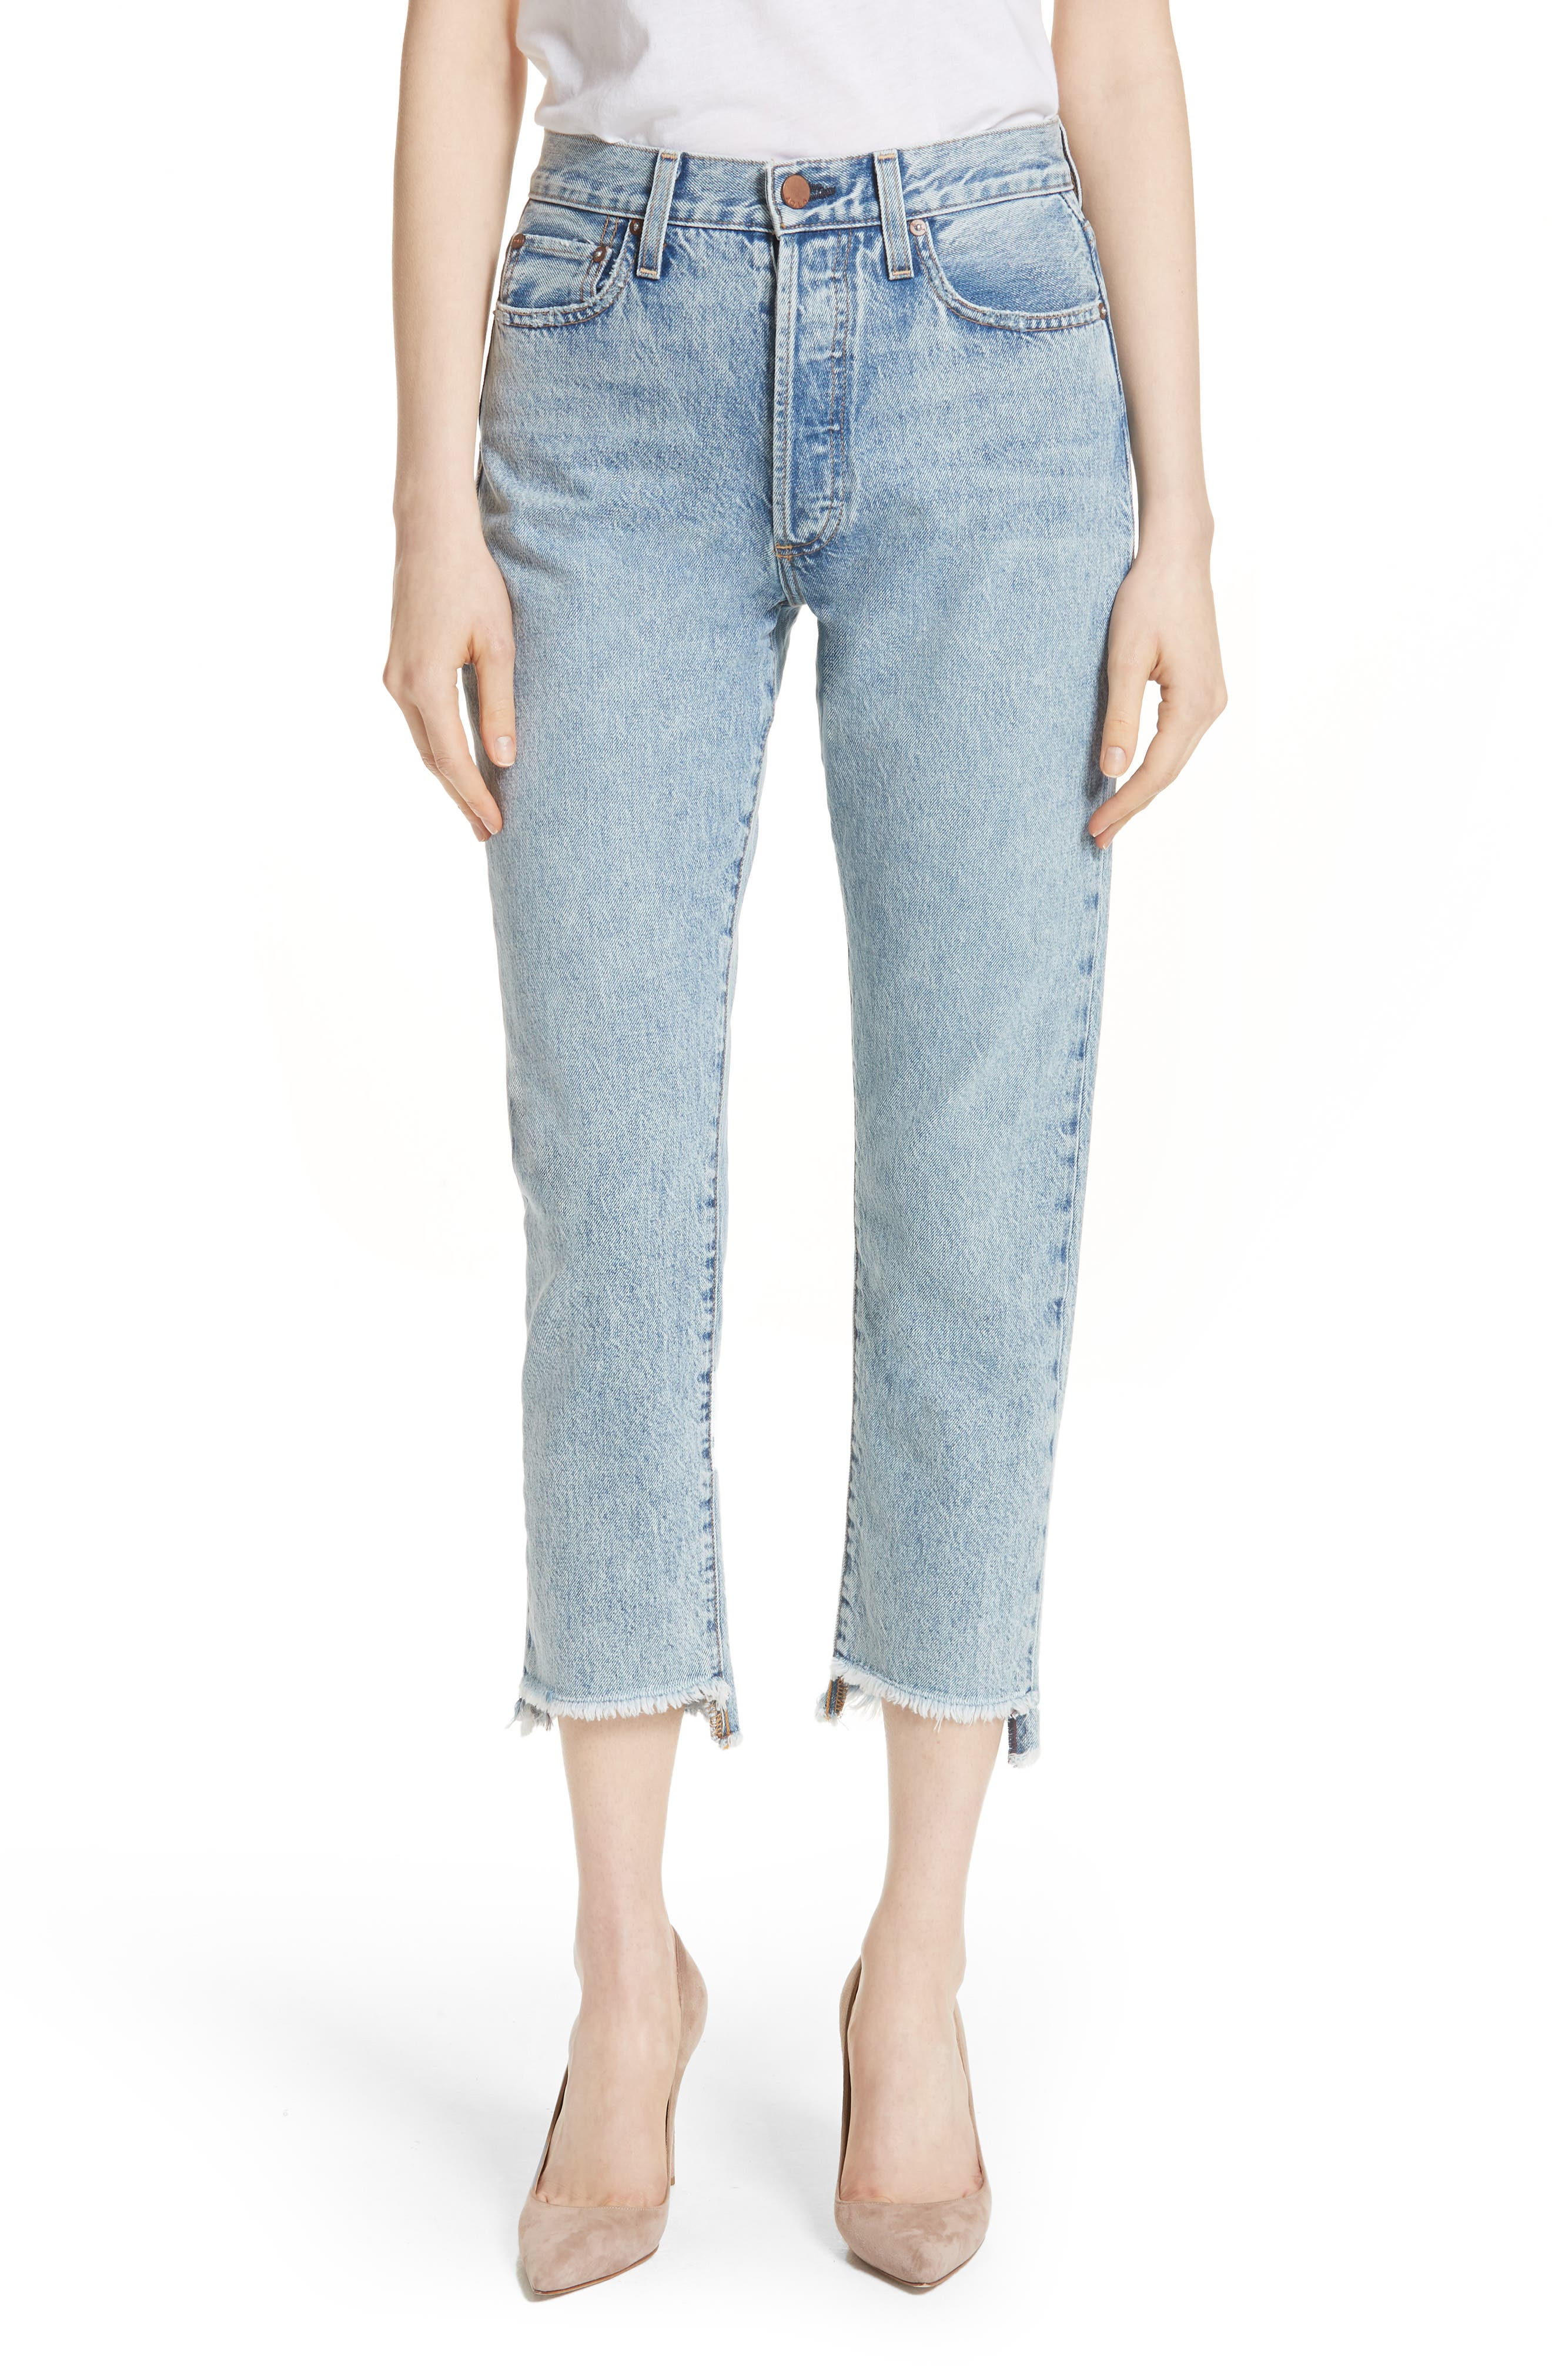 AO.LA Amazing Good Luck Slim Girlfriend Jeans,                         Main,                         color, Out Of Sight/ Gold